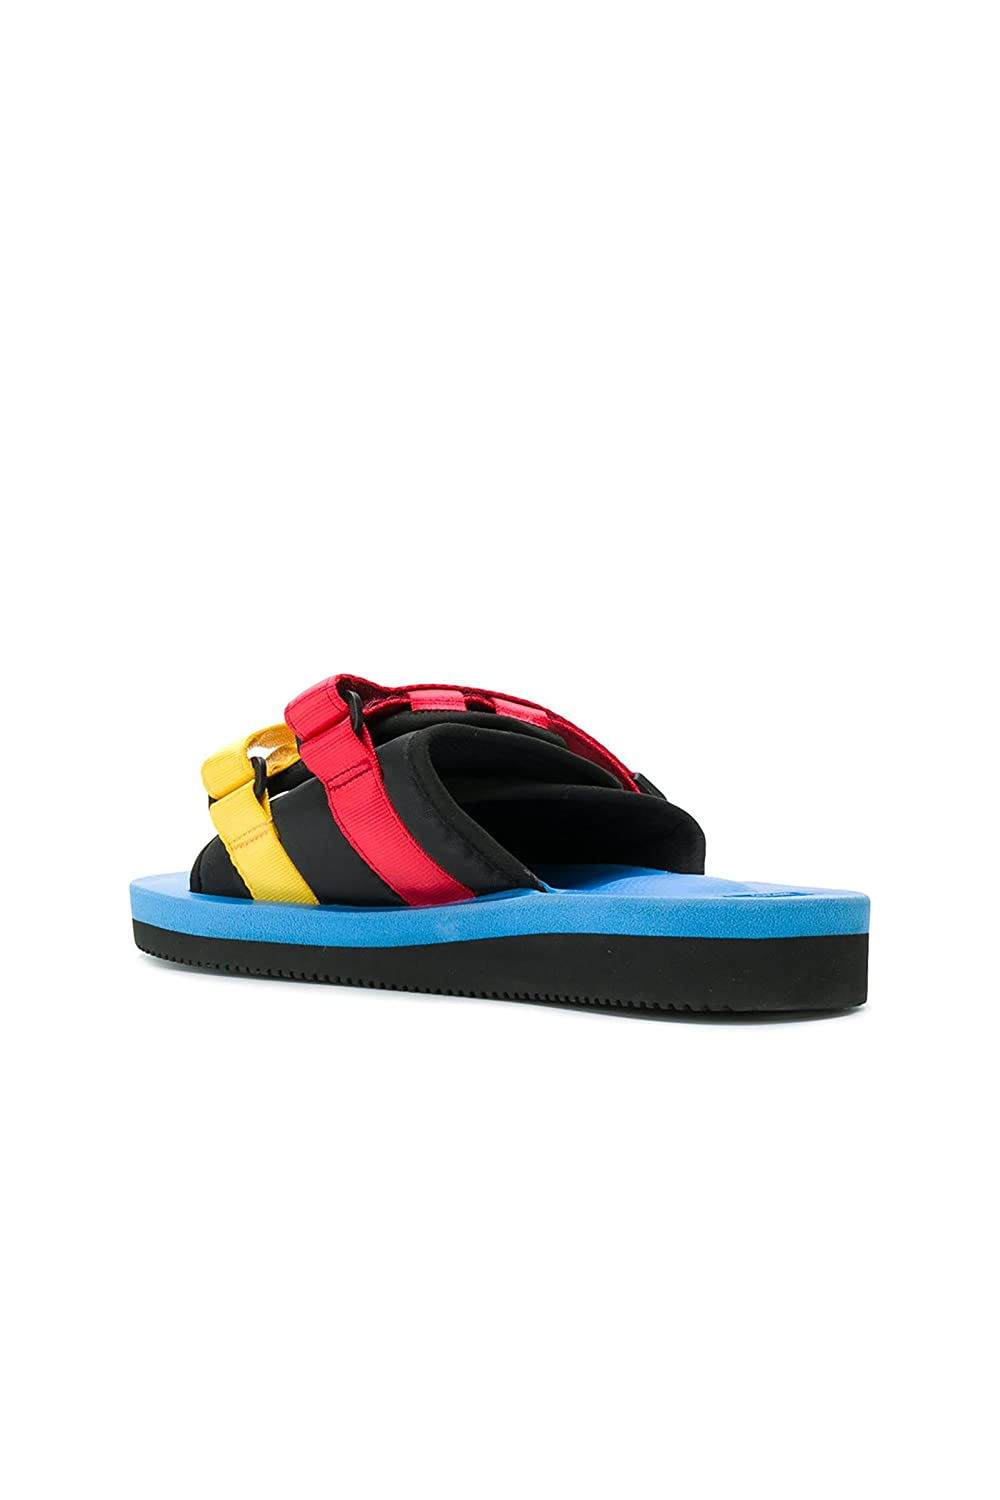 Suicoke Moto Vibeu Sandals Multi/us 8/eu 41